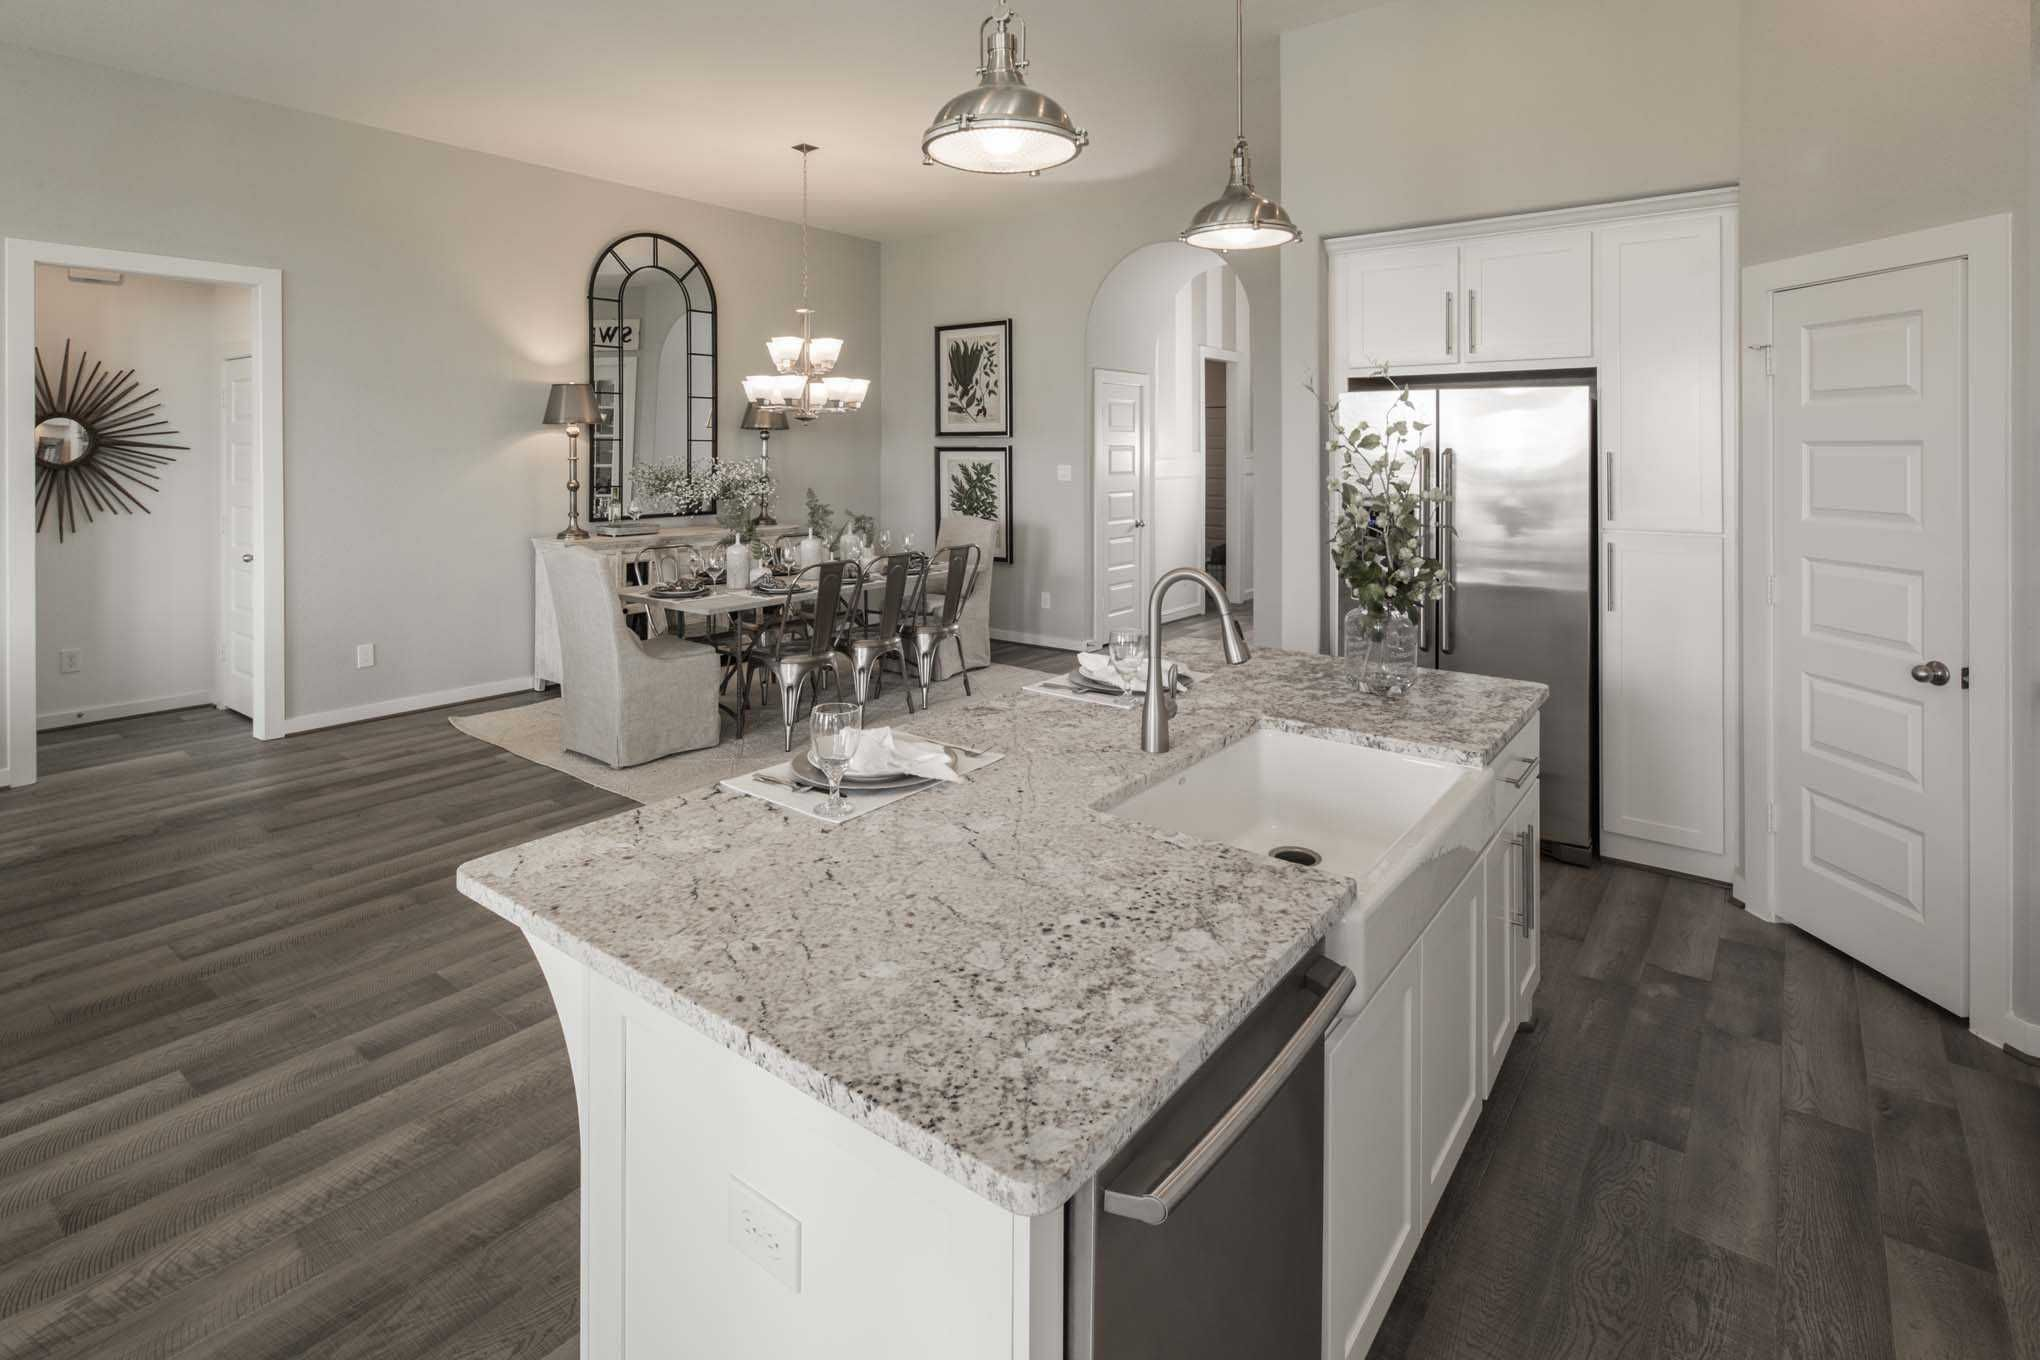 Kitchen Design Houston Extraordinary Highland Homes Plan 539 Model Home In Houston Texas Veranda 55S 2018